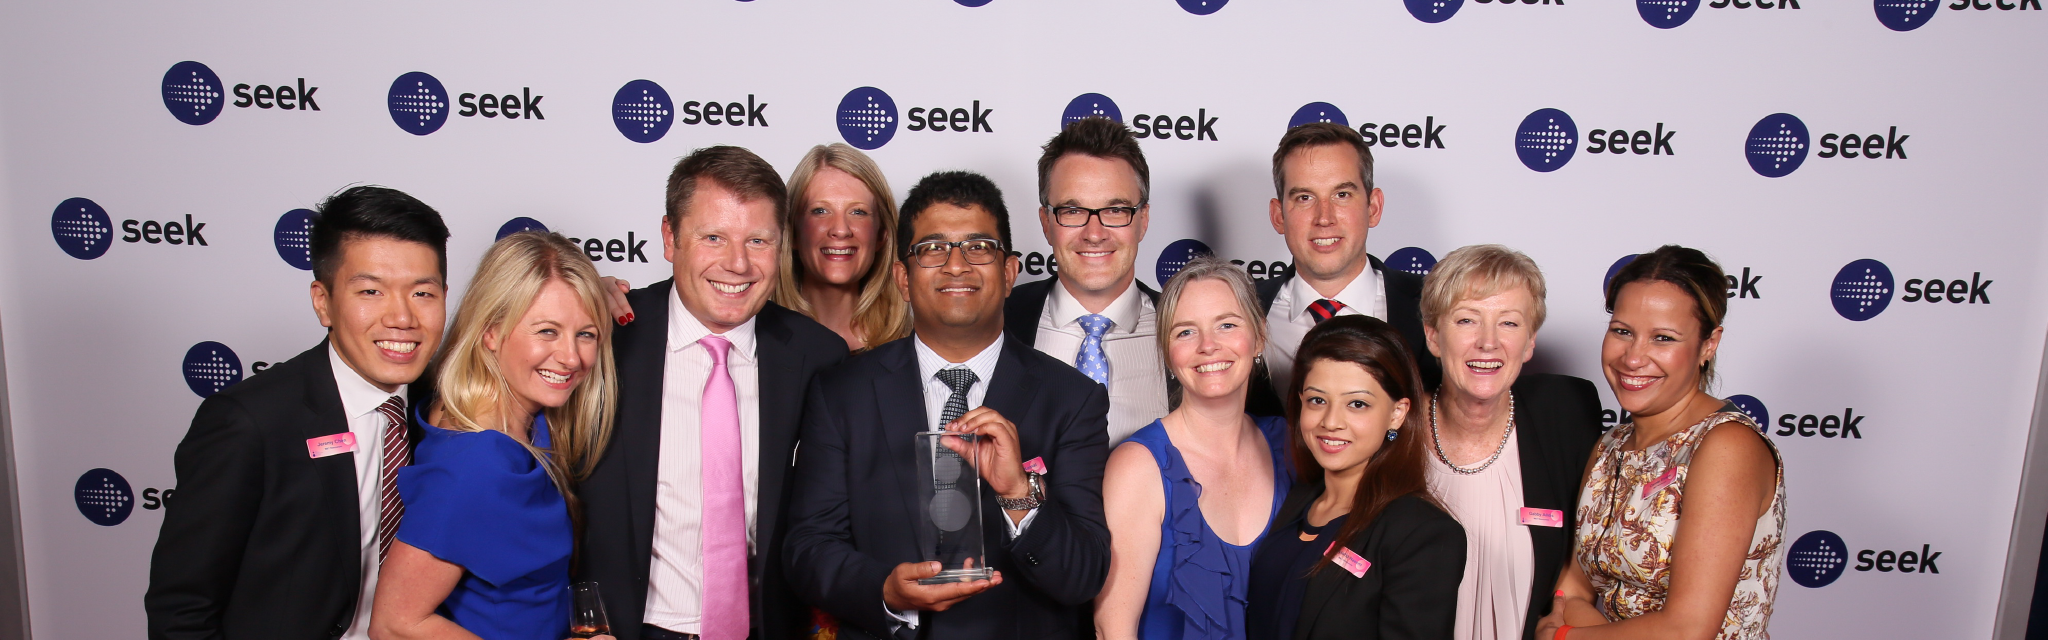 M&T nominated for SEEK Annual Recruitment Awards 2015